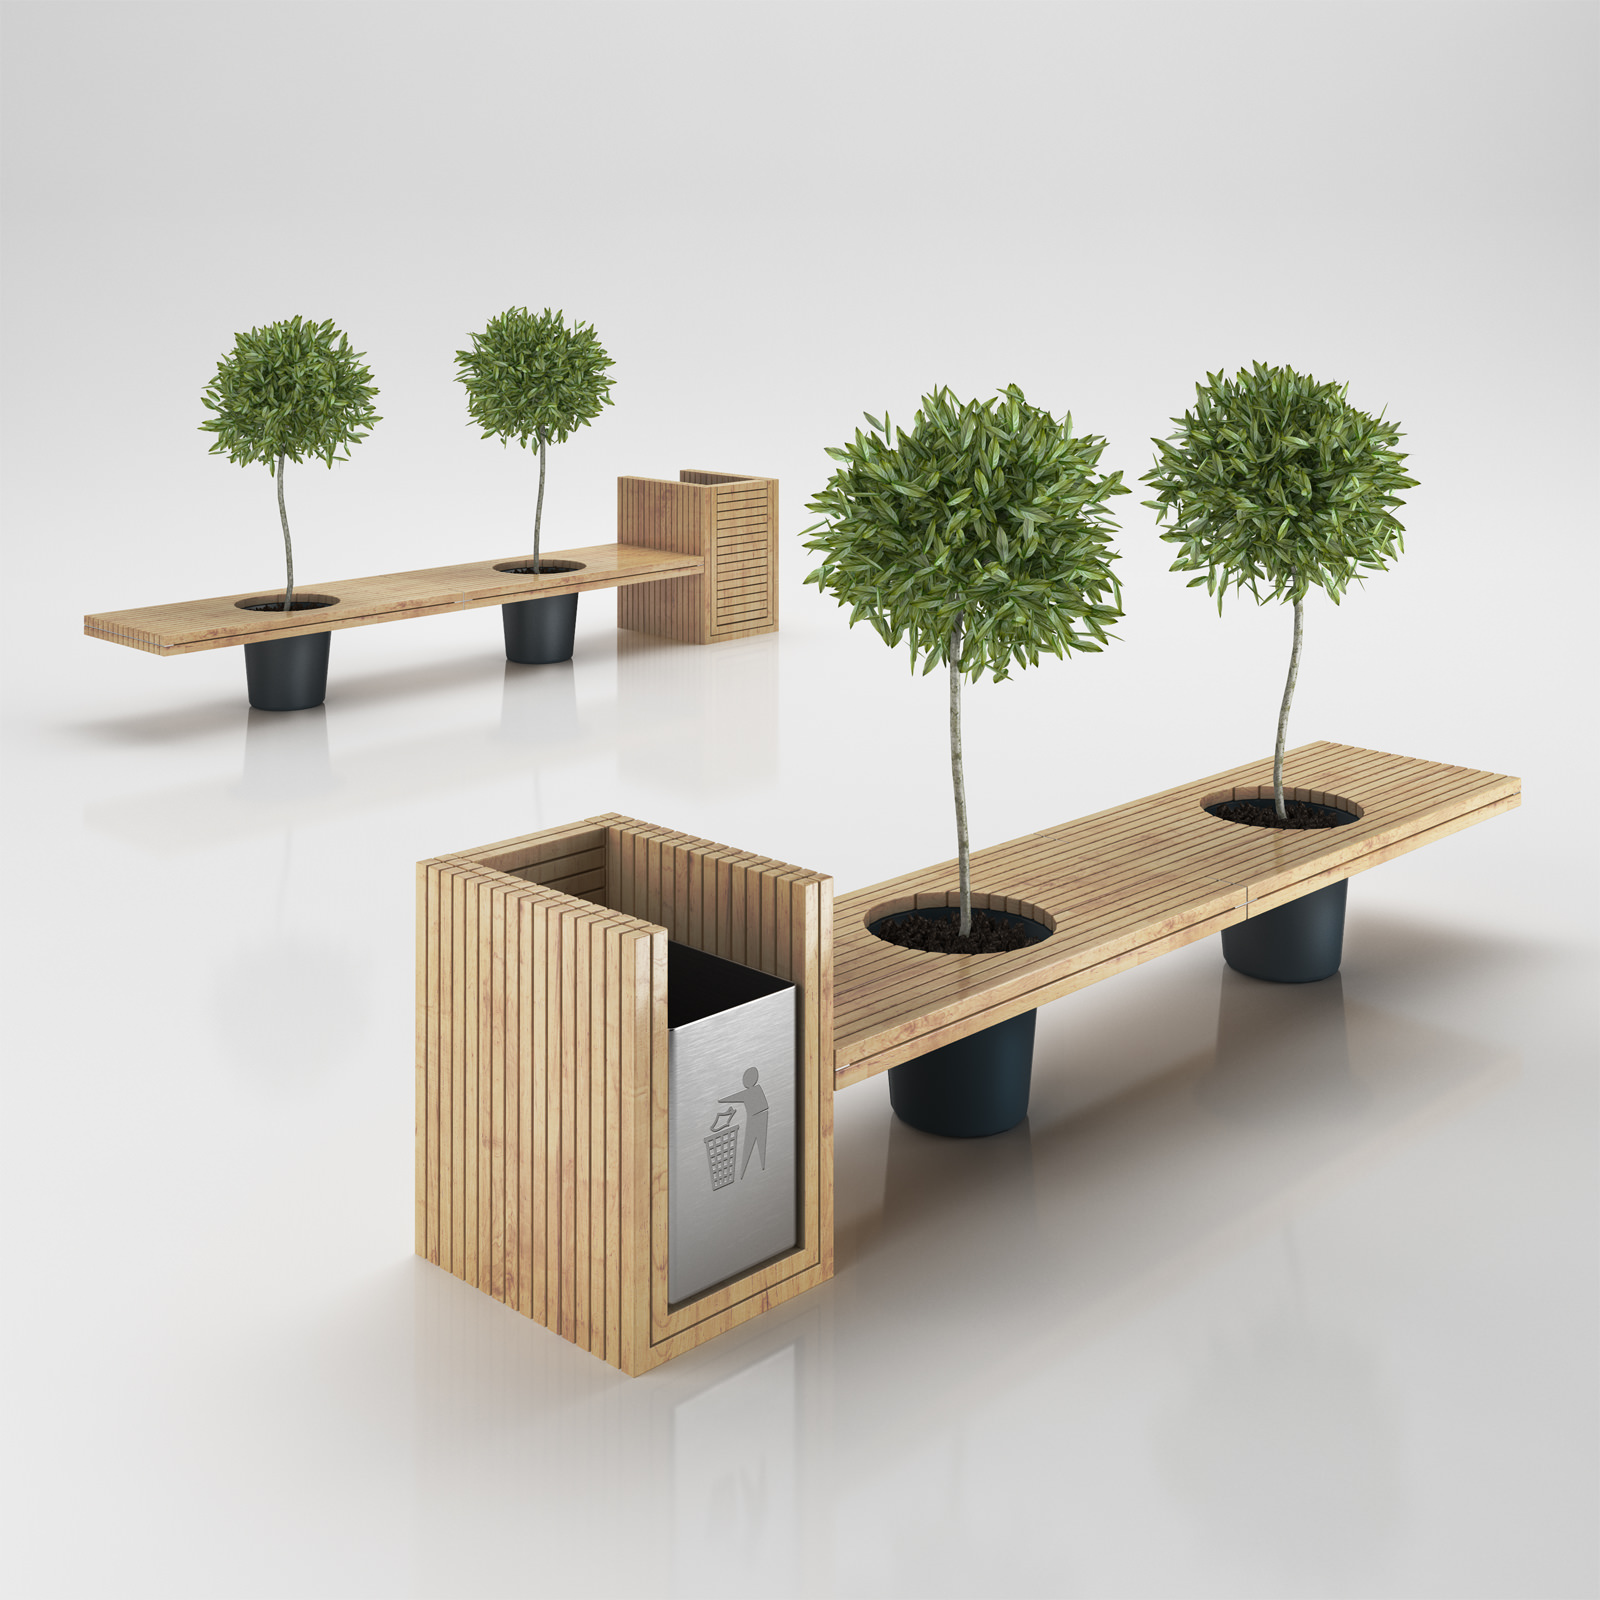 Wooden Eco Design Bench with Integrated Tr... 3D Model .max .obj .3ds ...